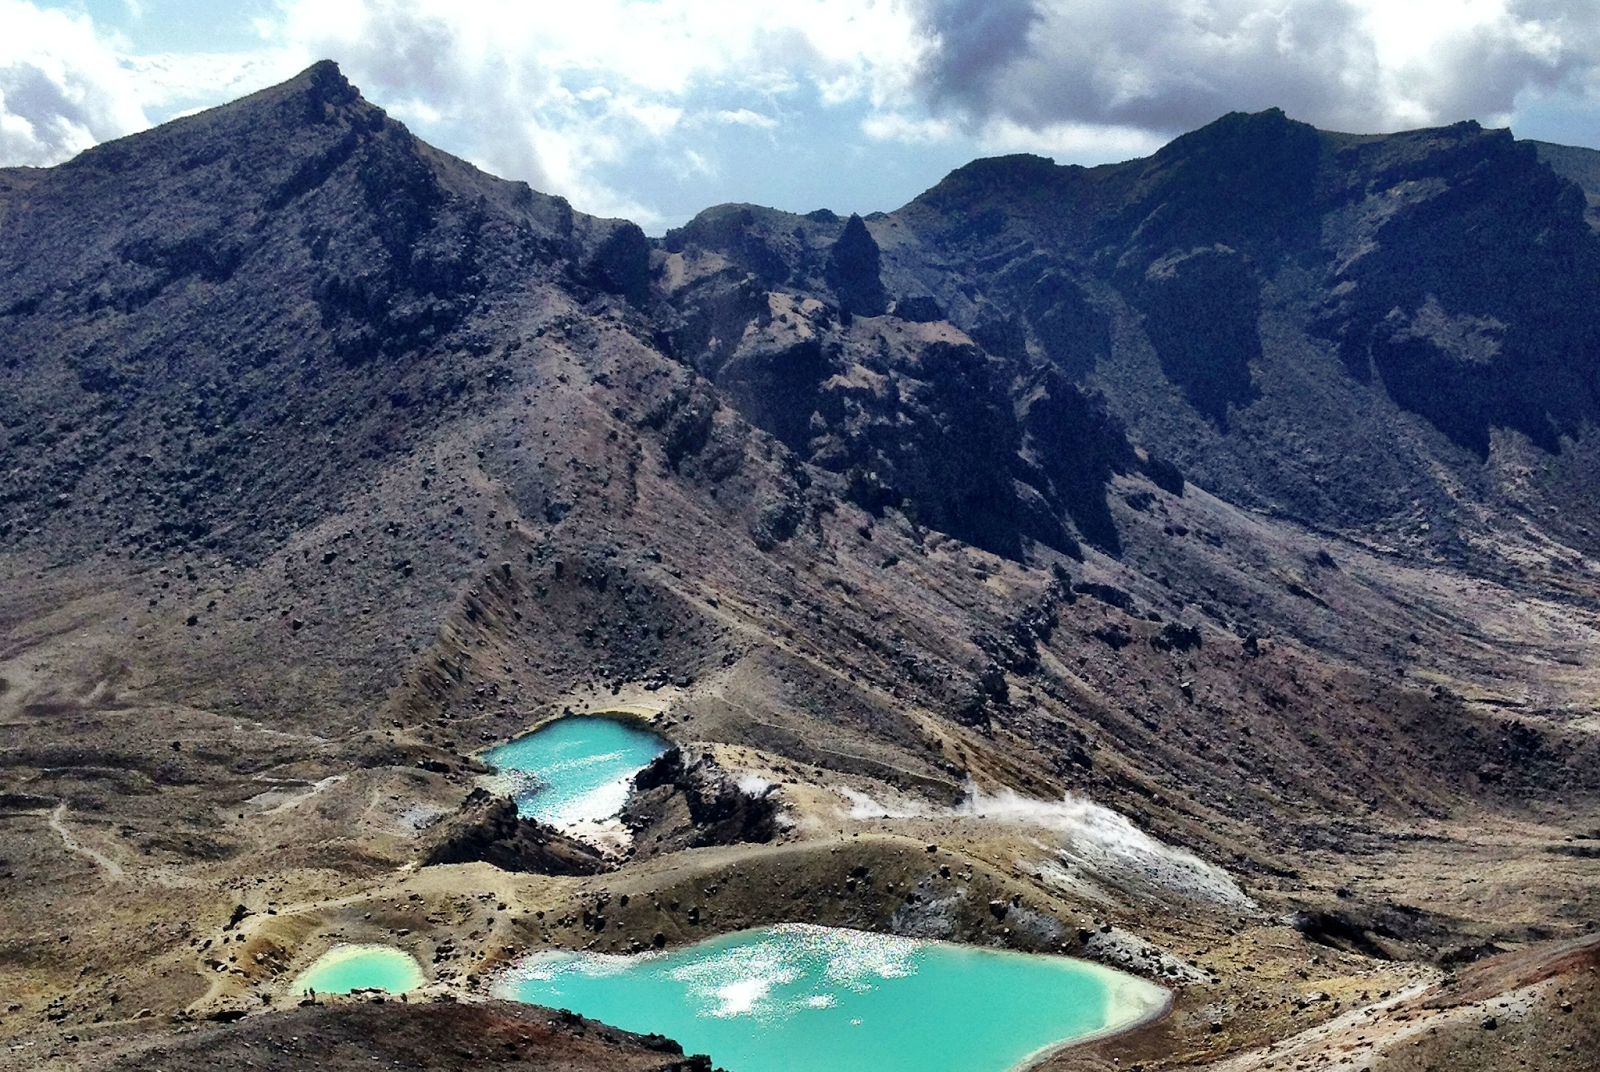 Looking down towards the Emerald Lakes from the Red Crater, Tongariro National Park, New Zealand